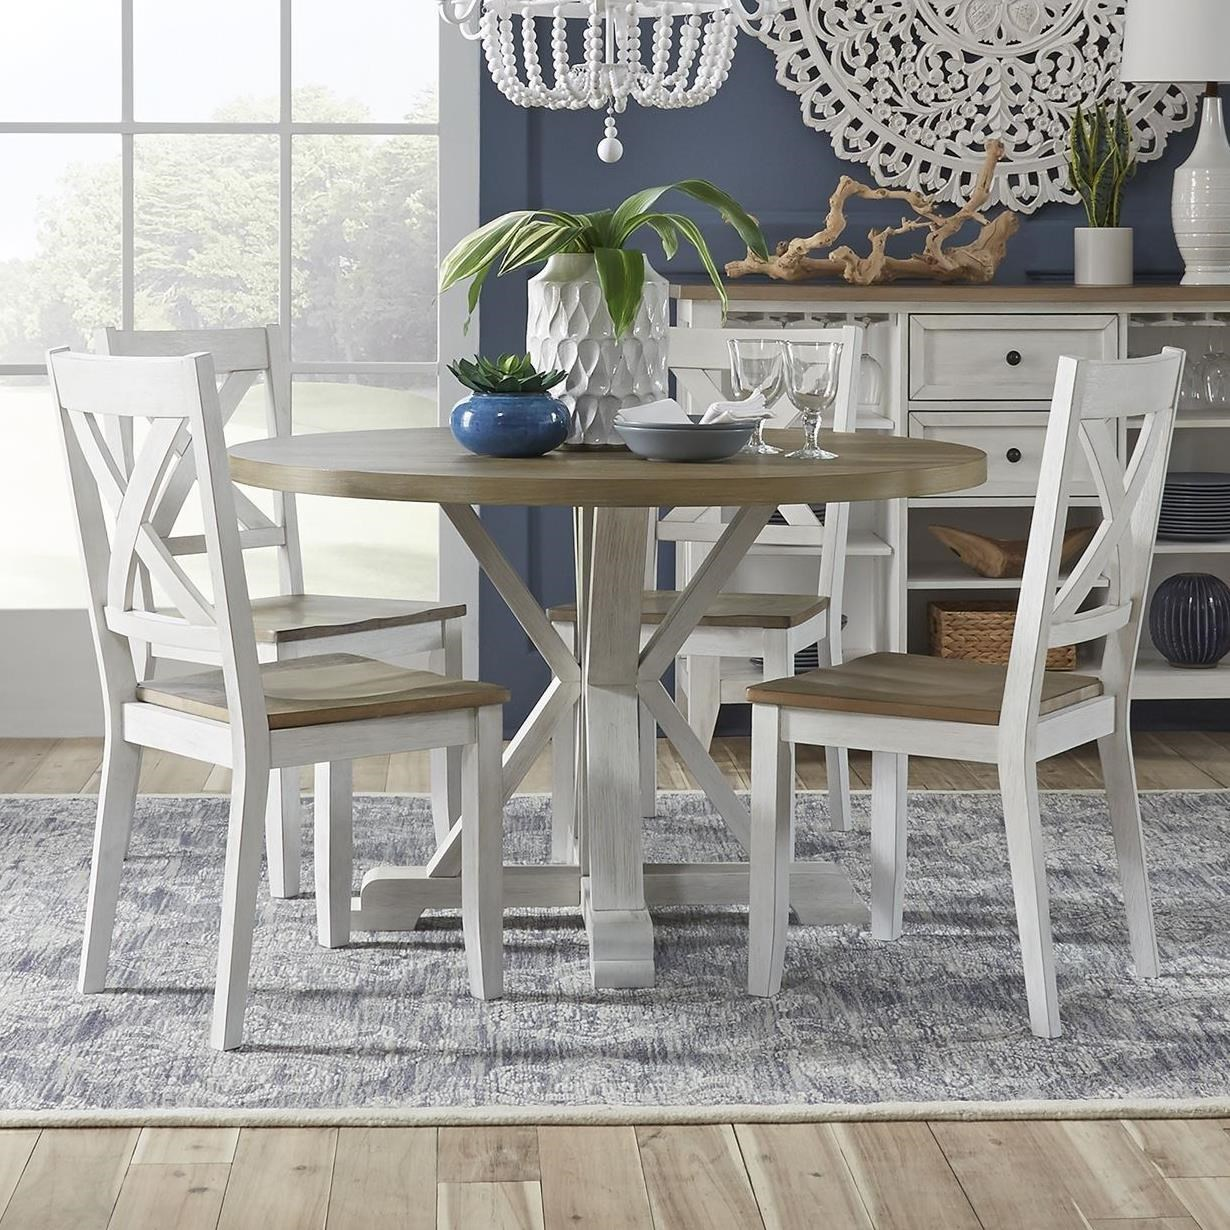 Lakeshore 5-Piece Table and Chair Set by Libby at Walker's Furniture